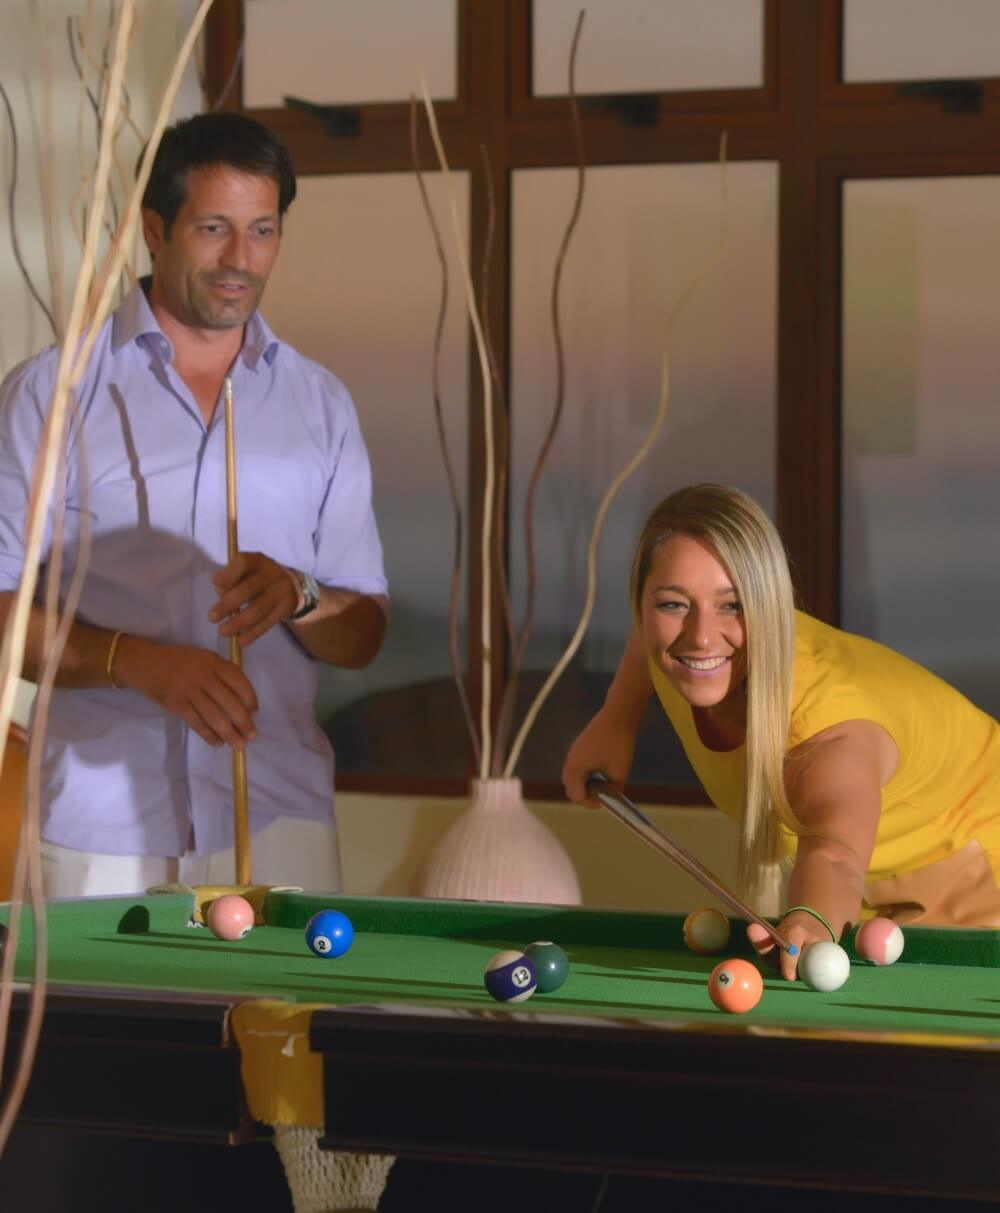 Snooker Table - Les Mariannes